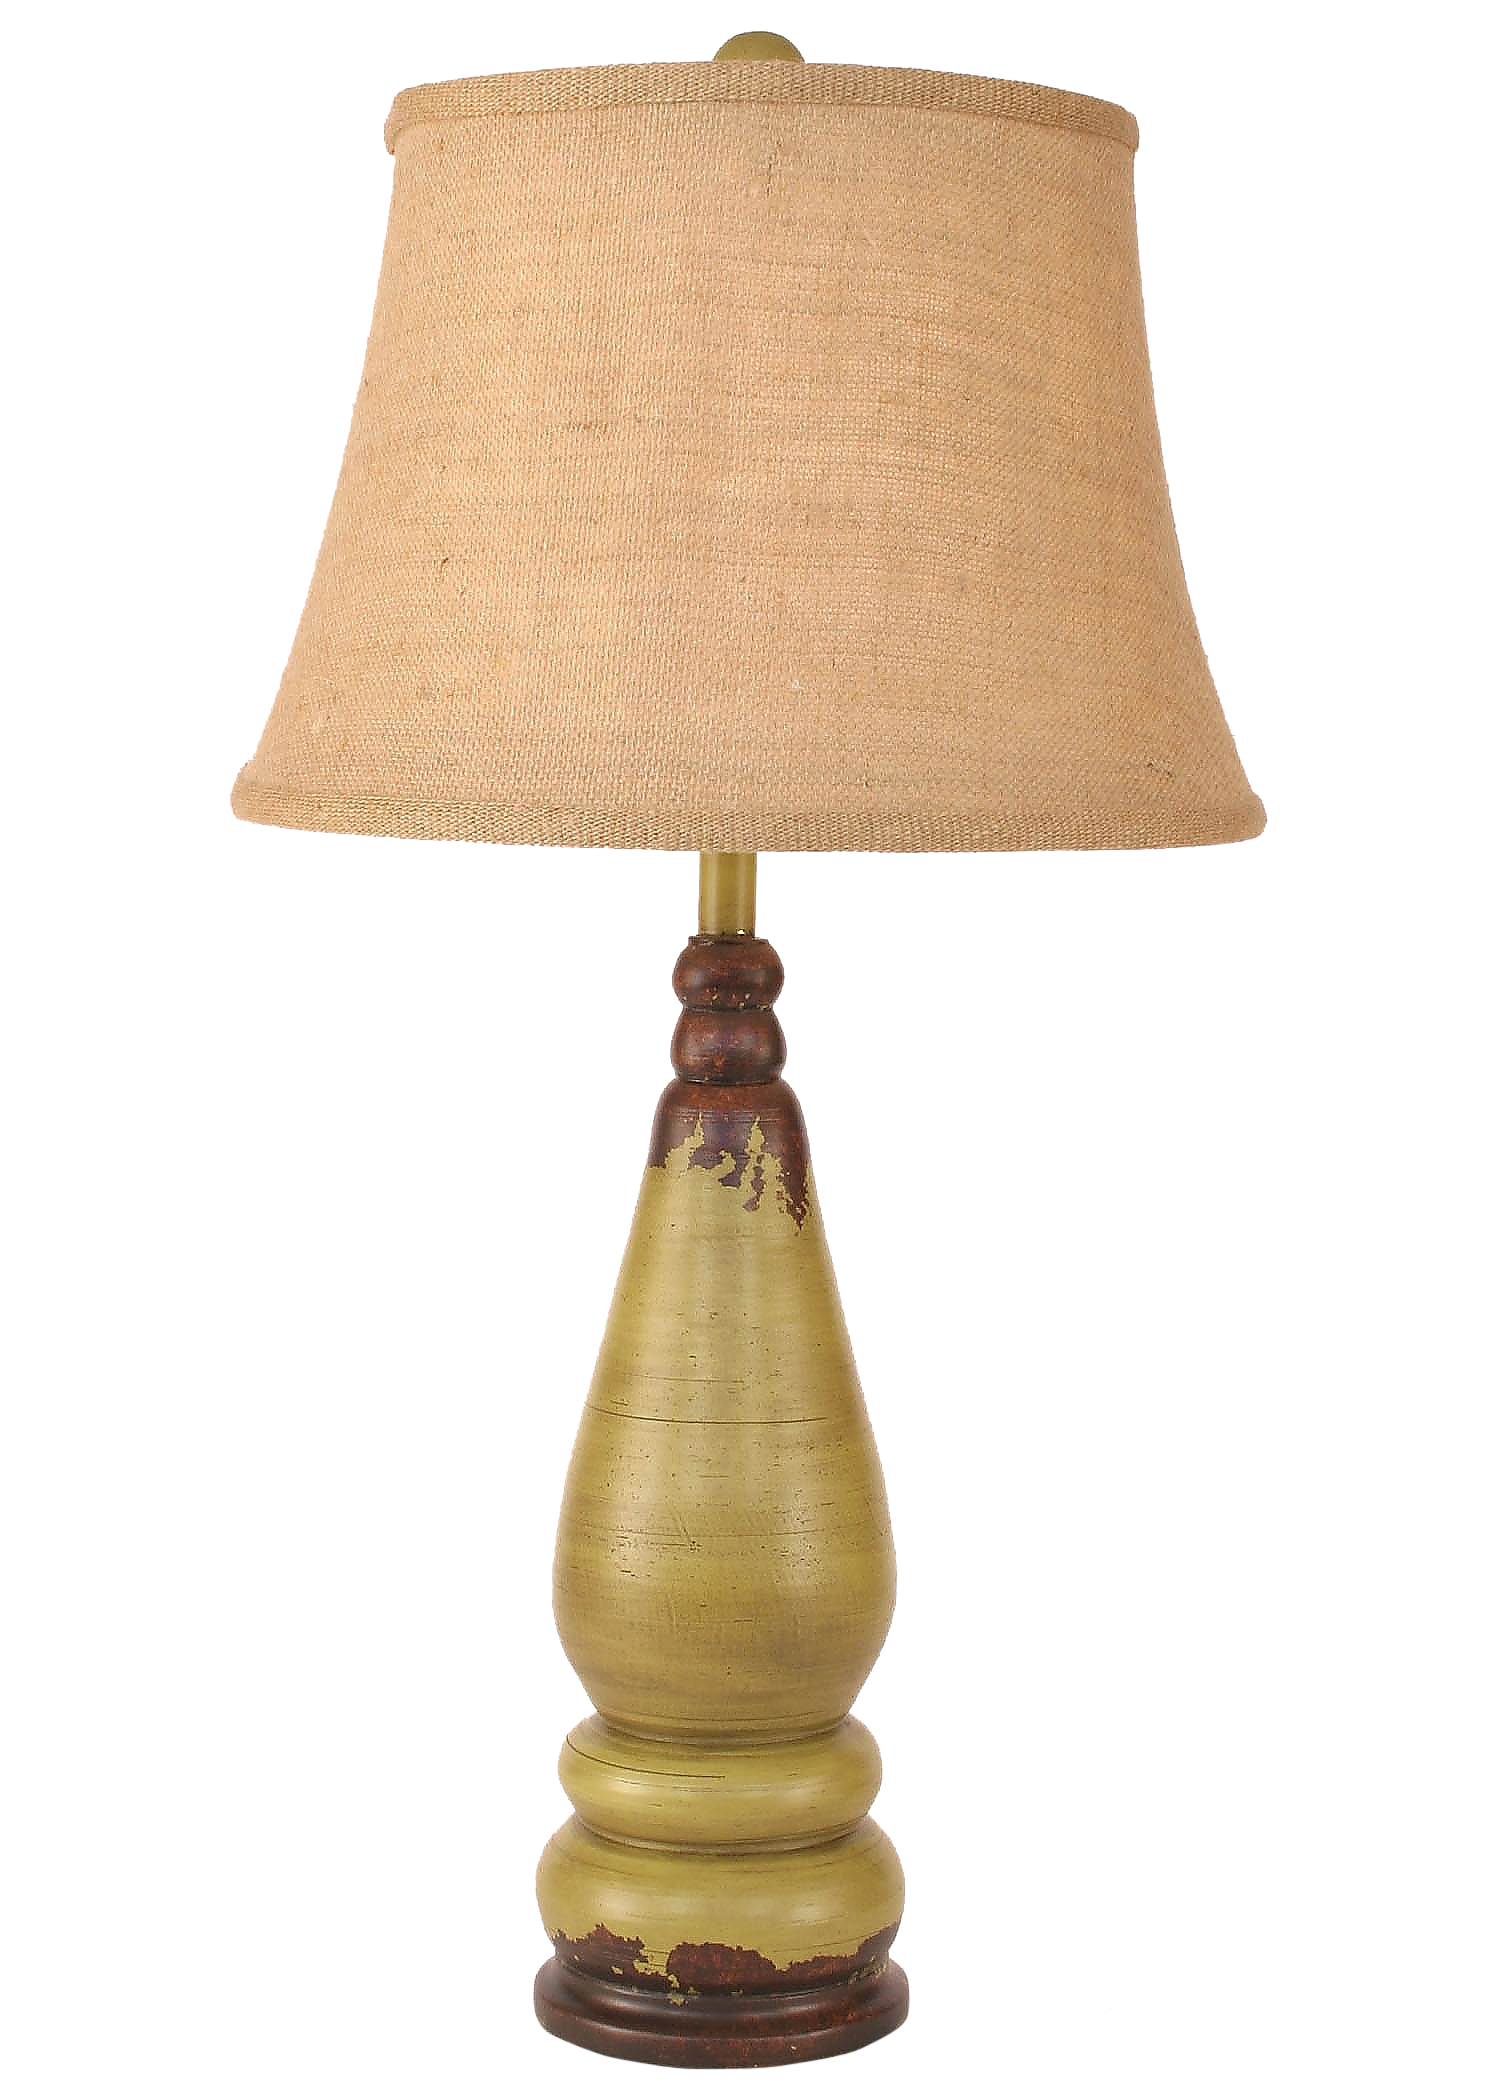 Aged Lime Tapered Spool Table Lamp - Coast Lamp Shop